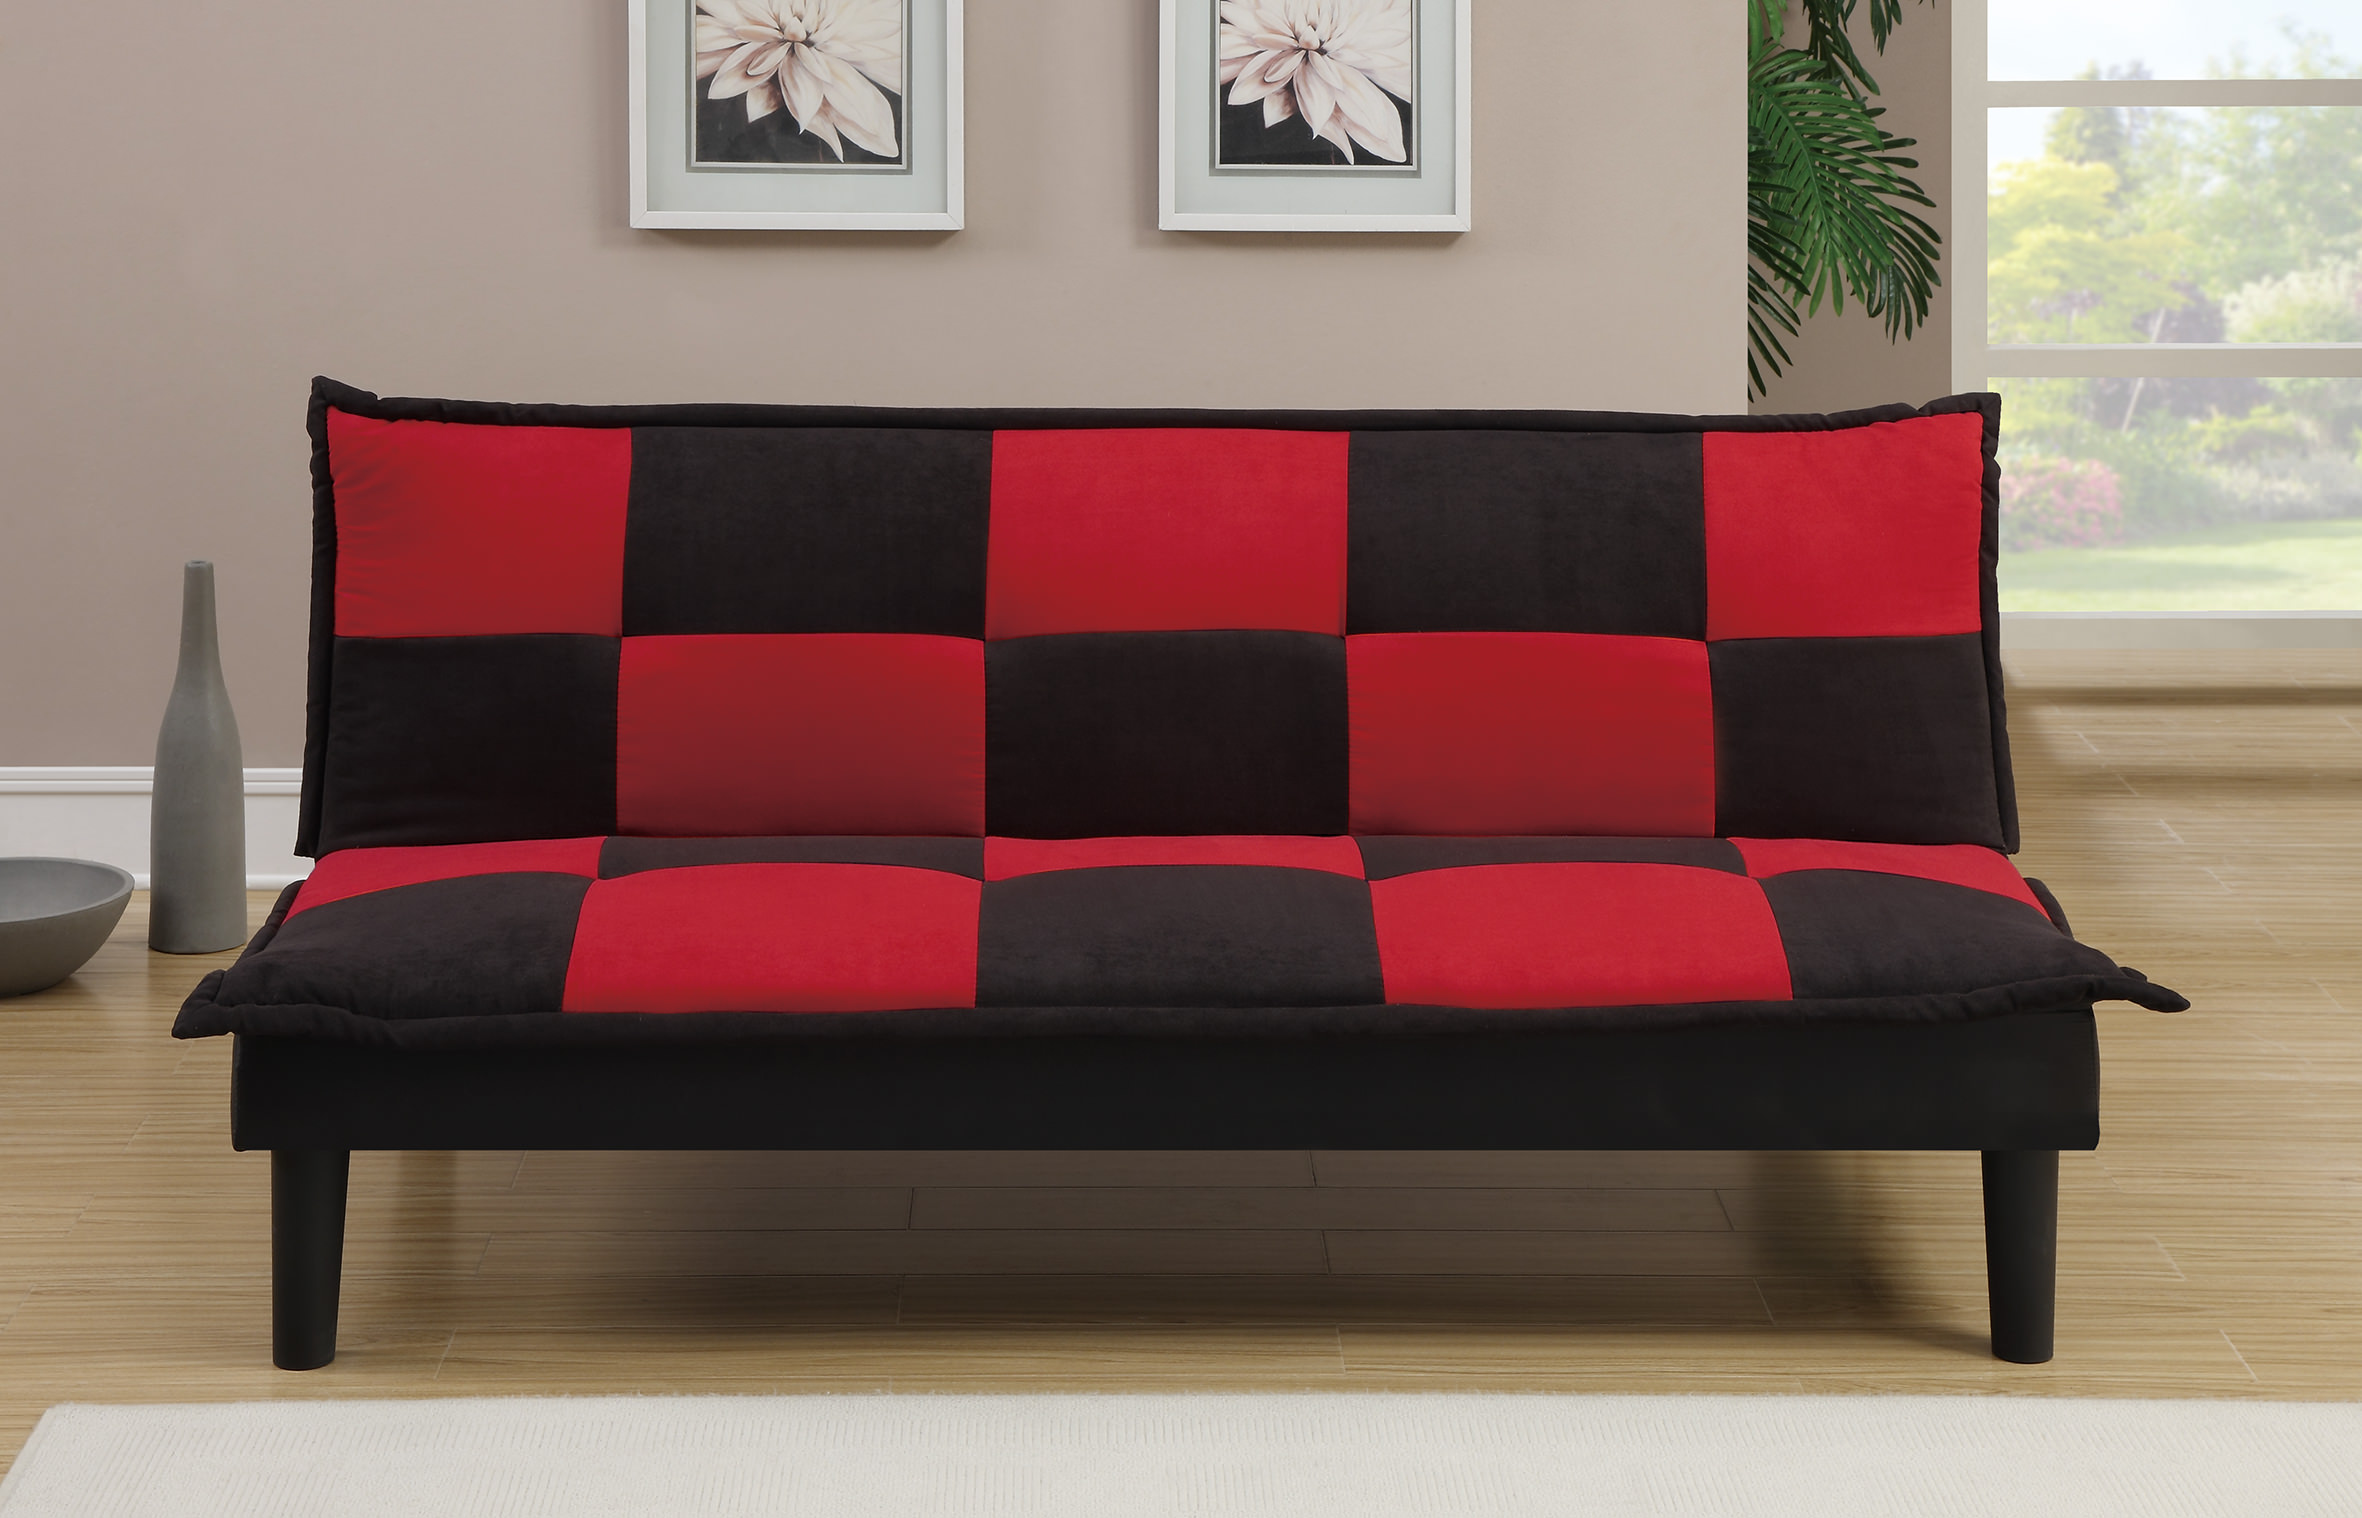 convertible bed sleeper leather s modern couch room lounge loveseat dorm futon red sofa p ebay living